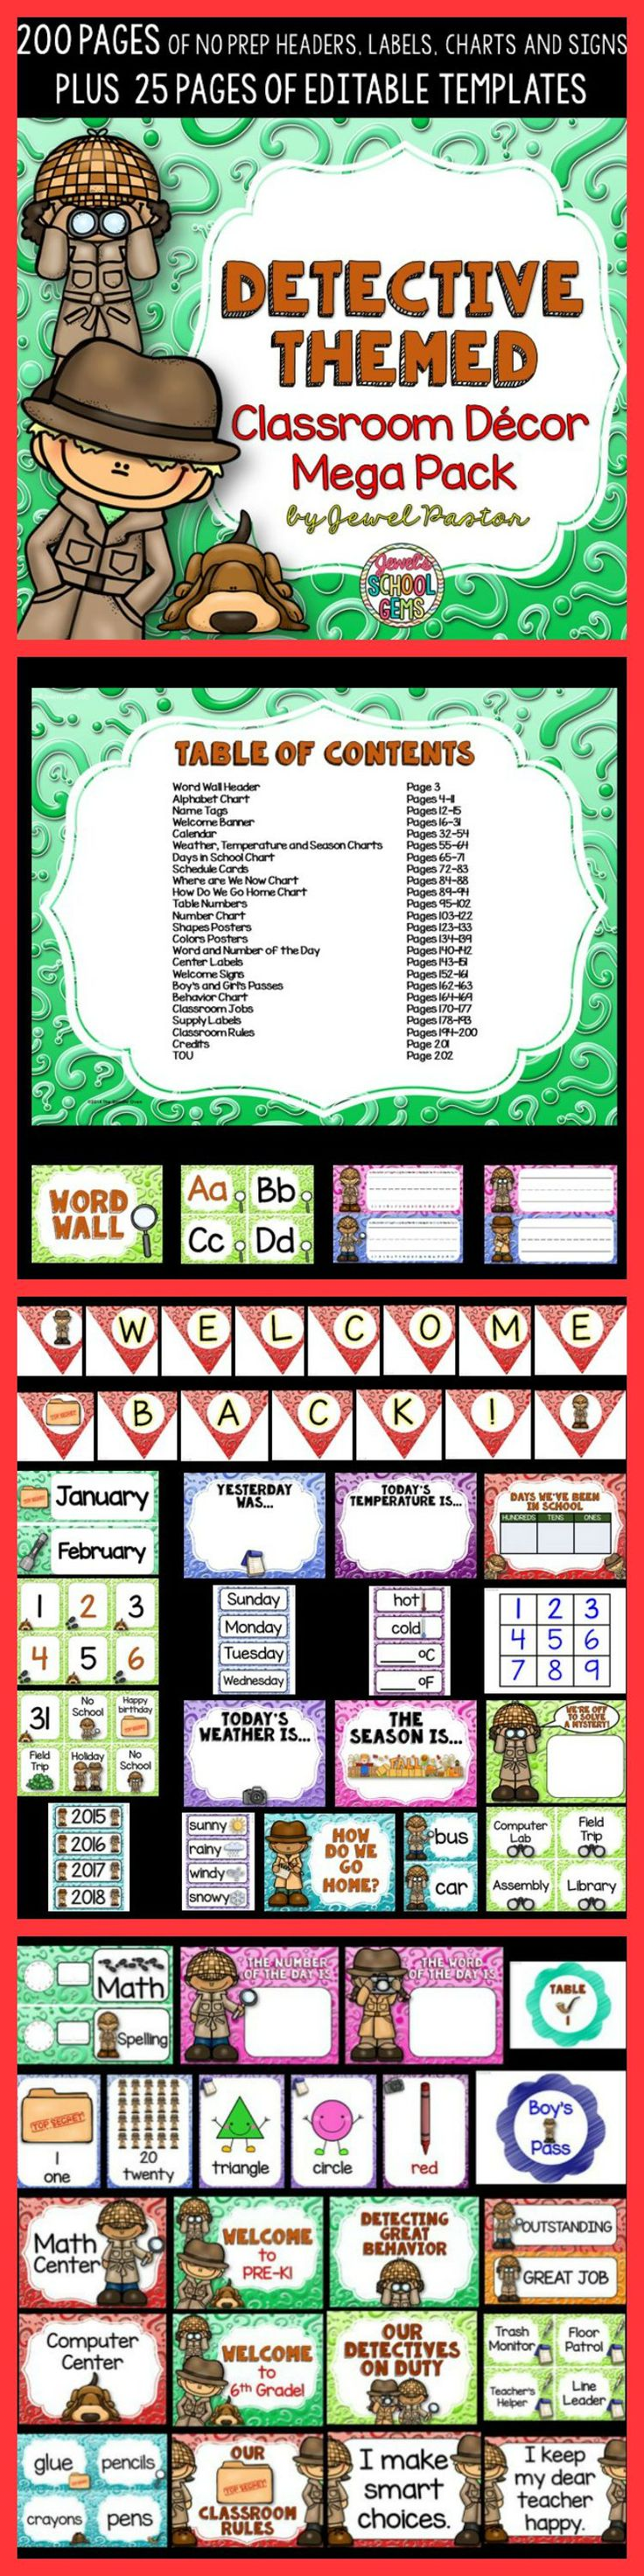 Detective Theme | Detective Theme  Treat your super sleuths to this Detective Themed Classroom Decor Mega Pack. It comes with 200 pages of NO PREP HEADERS, LABELS, CHARTS AND SIGNS plus 25 pages of EDITABLE PARTS/TEMPLATES.